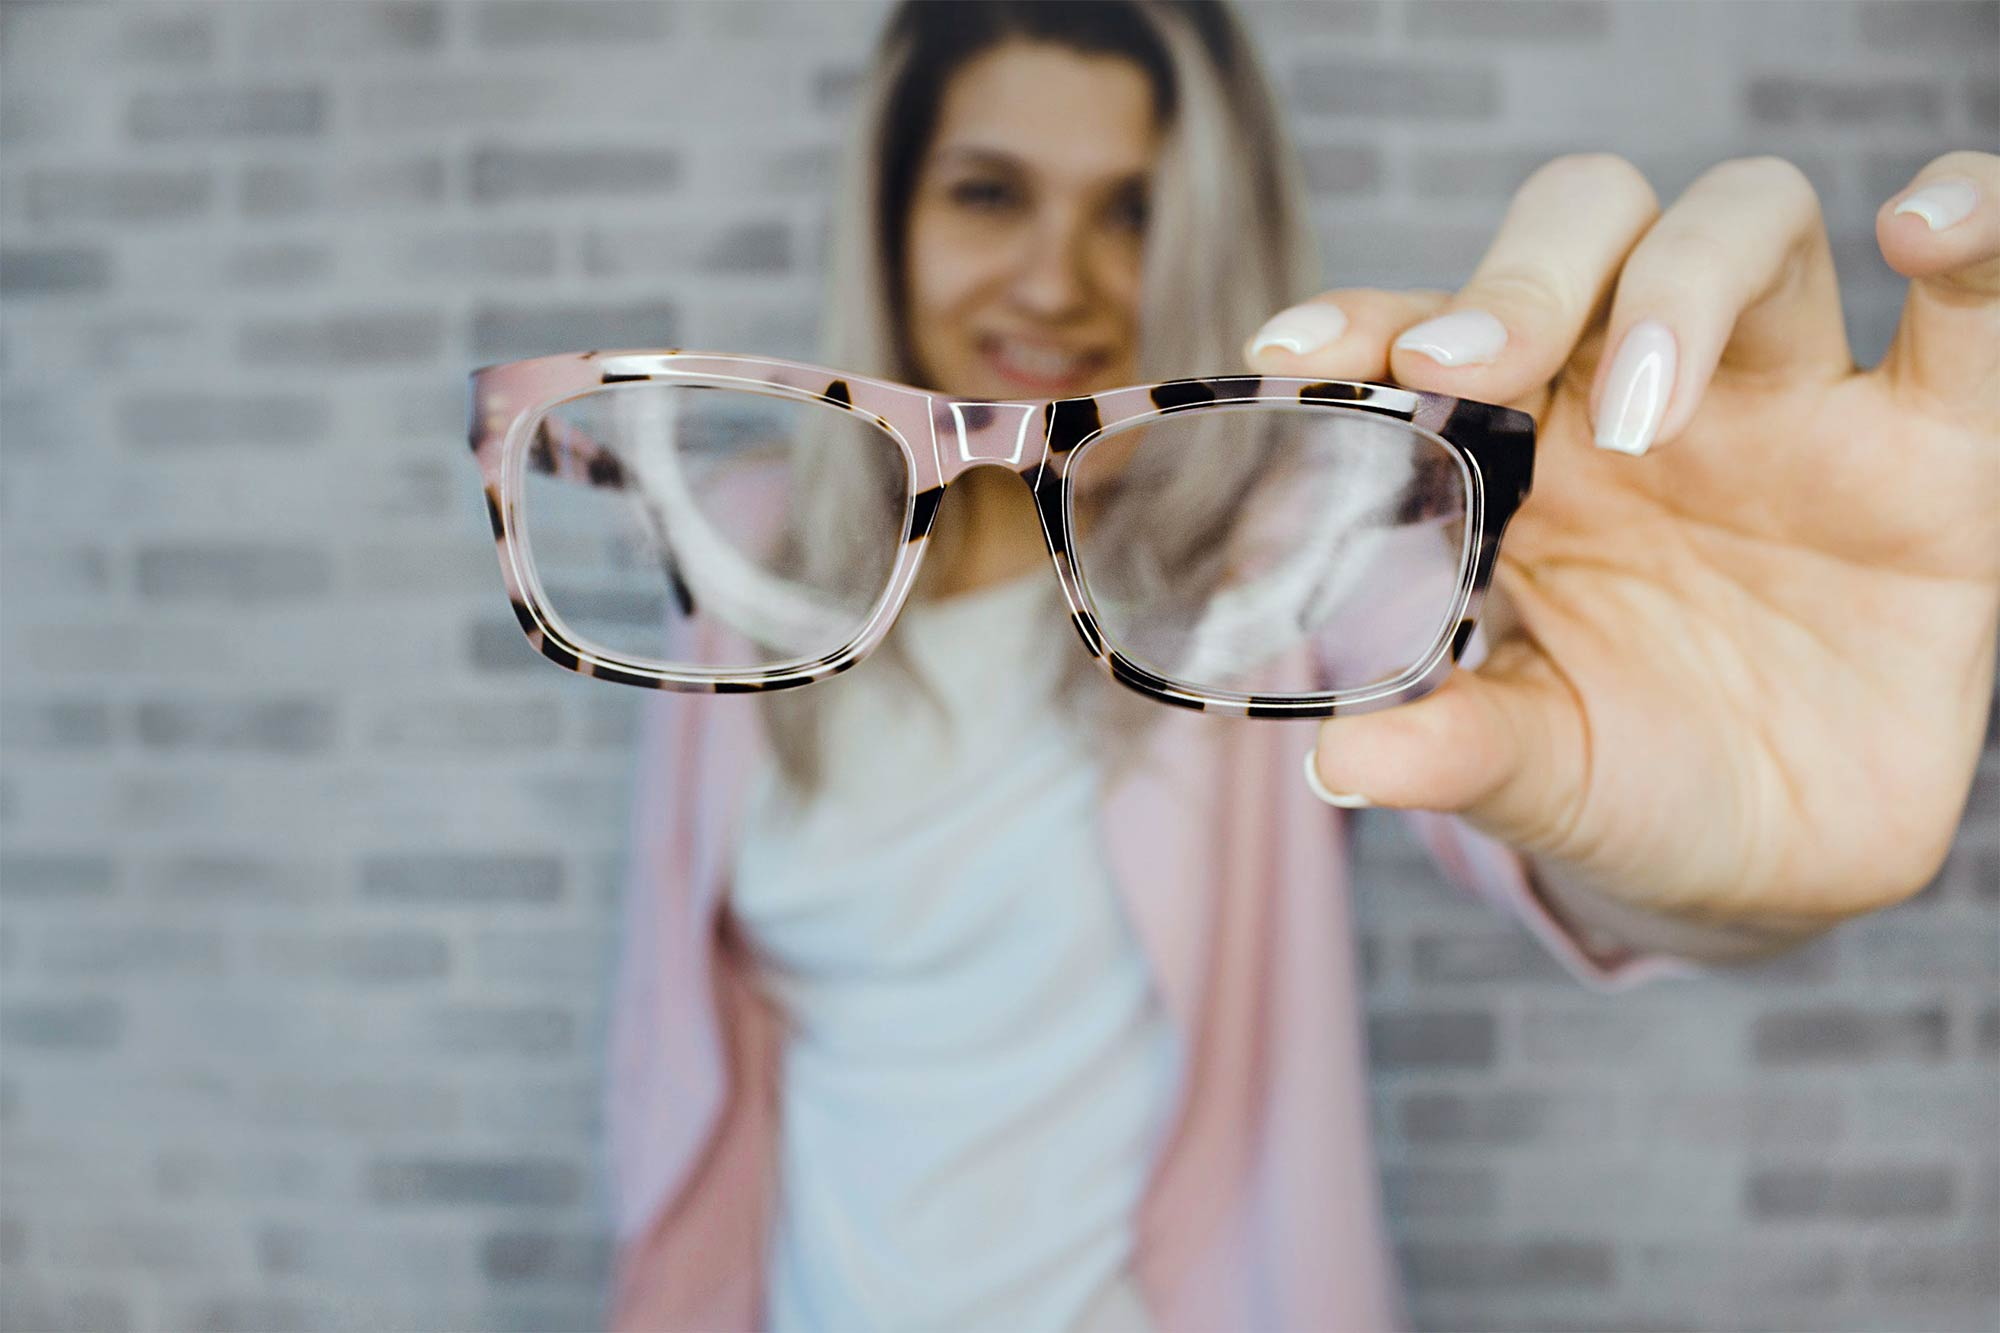 Woman holding up a pair of reading glasses